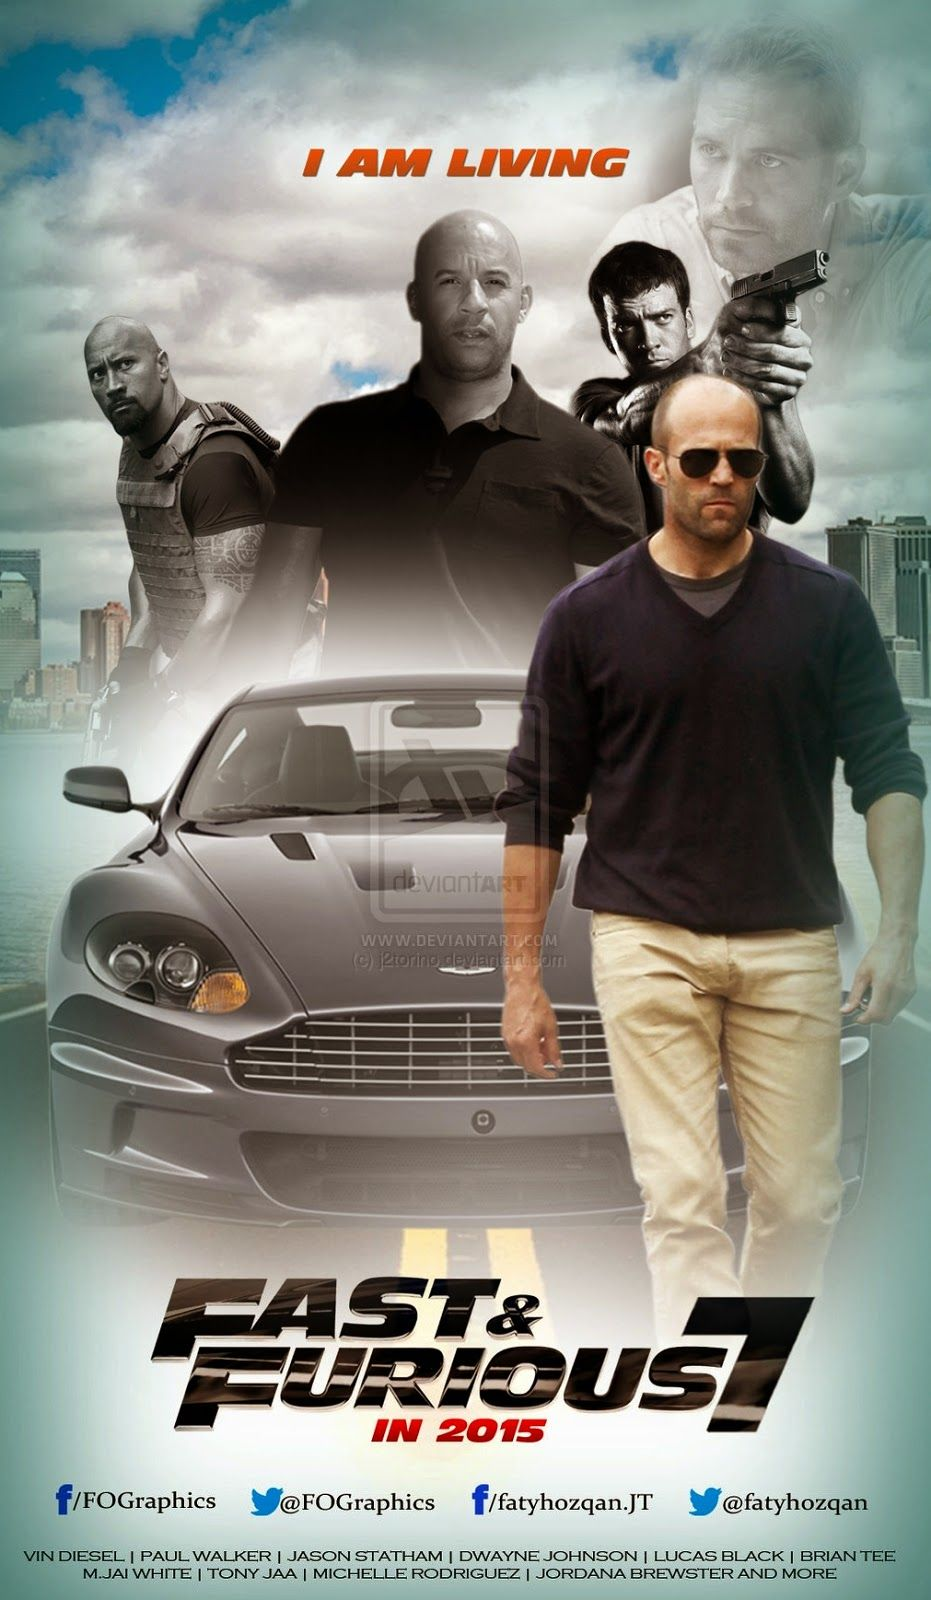 Fast and furious 7 movie download full hd free